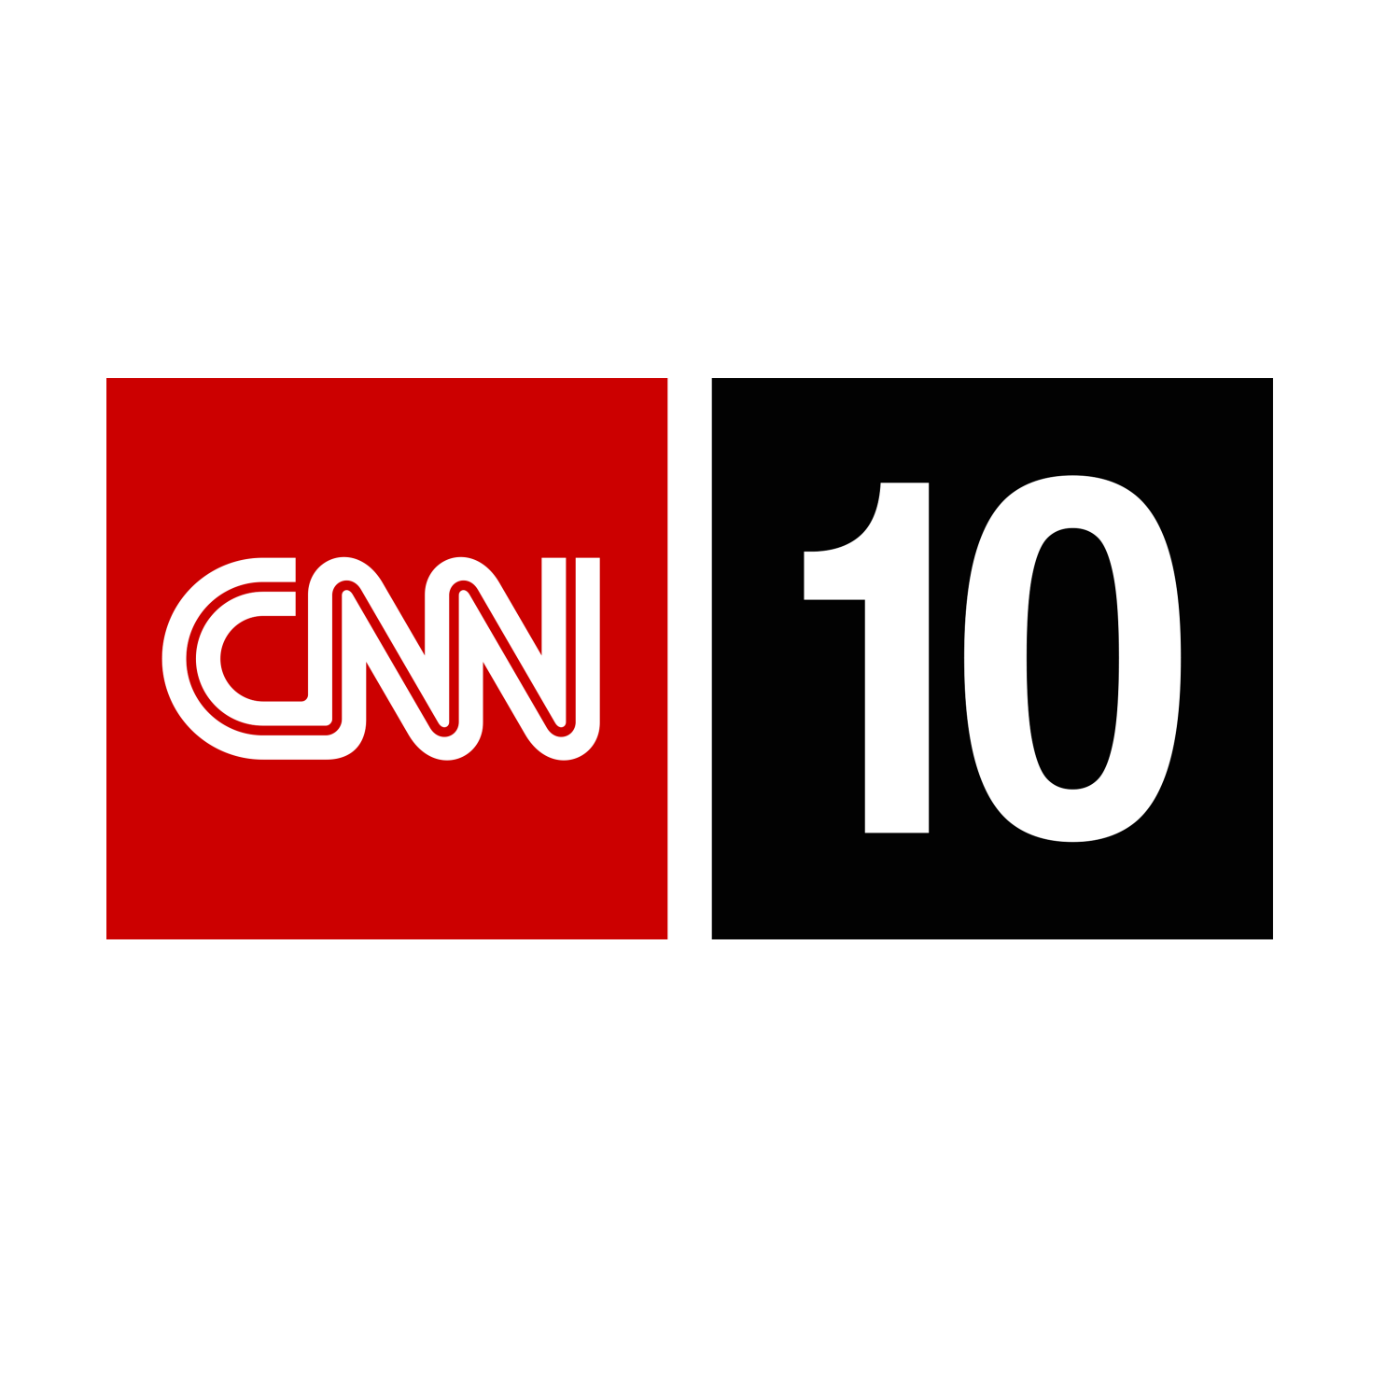 CNN Student News - March 5, 2013